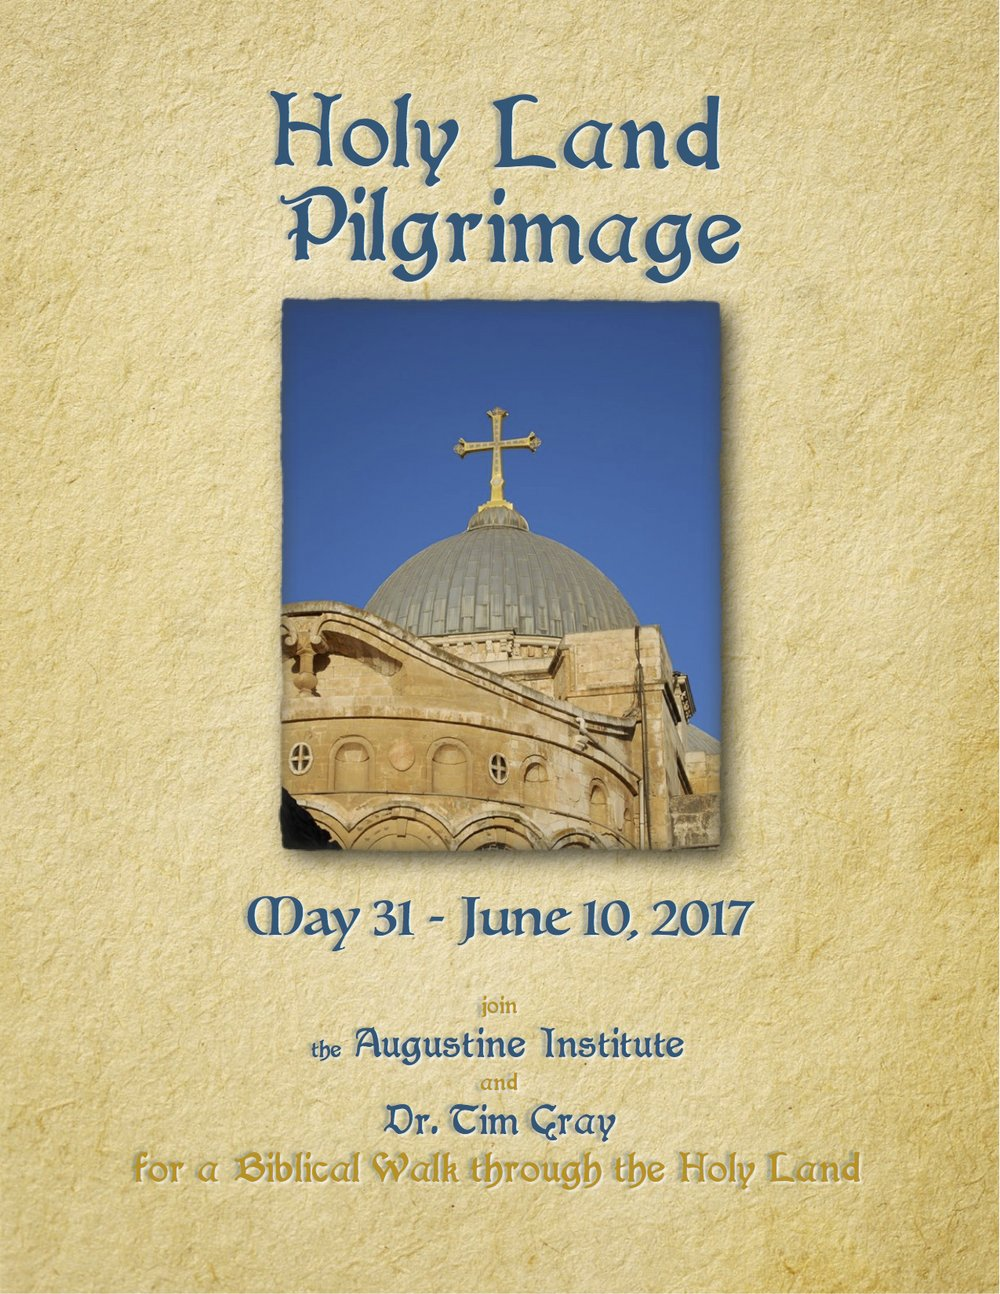 2017 06 AI Holy Land Brochure - 1.jpg